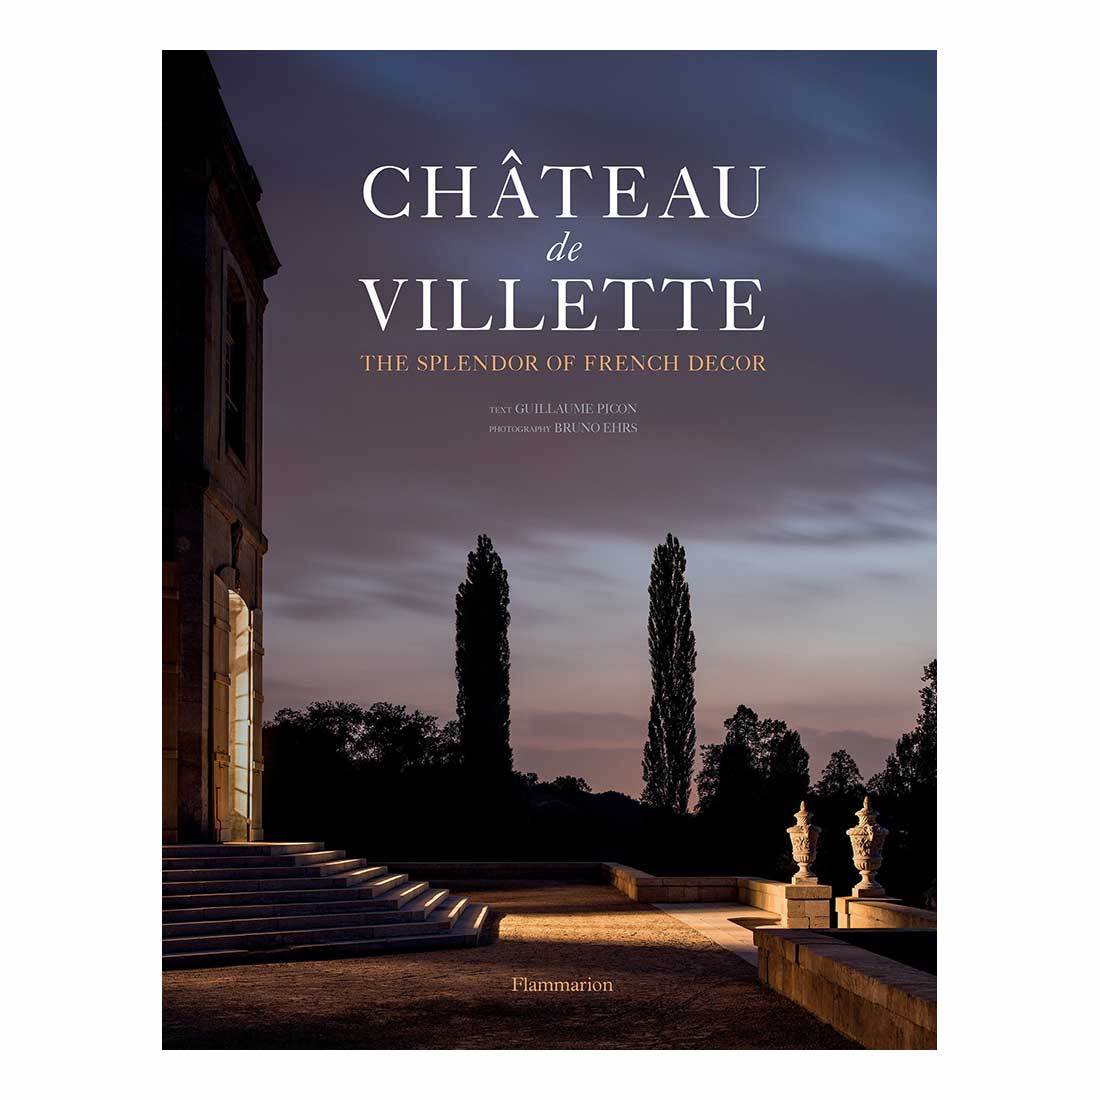 Château de Villette: The Splendor of French Decor